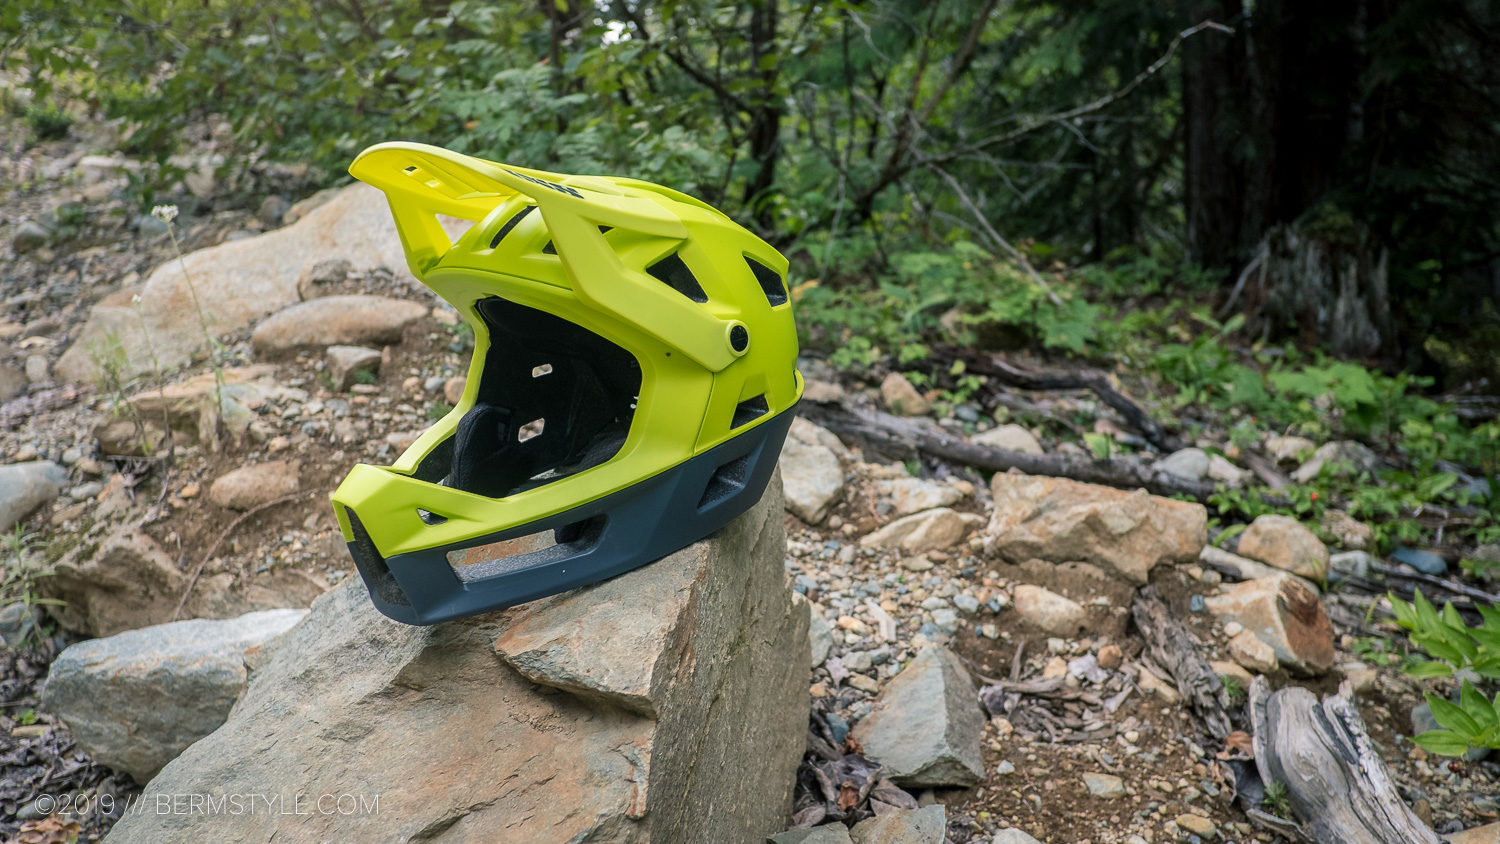 The iXS Trigger FF in Lime.